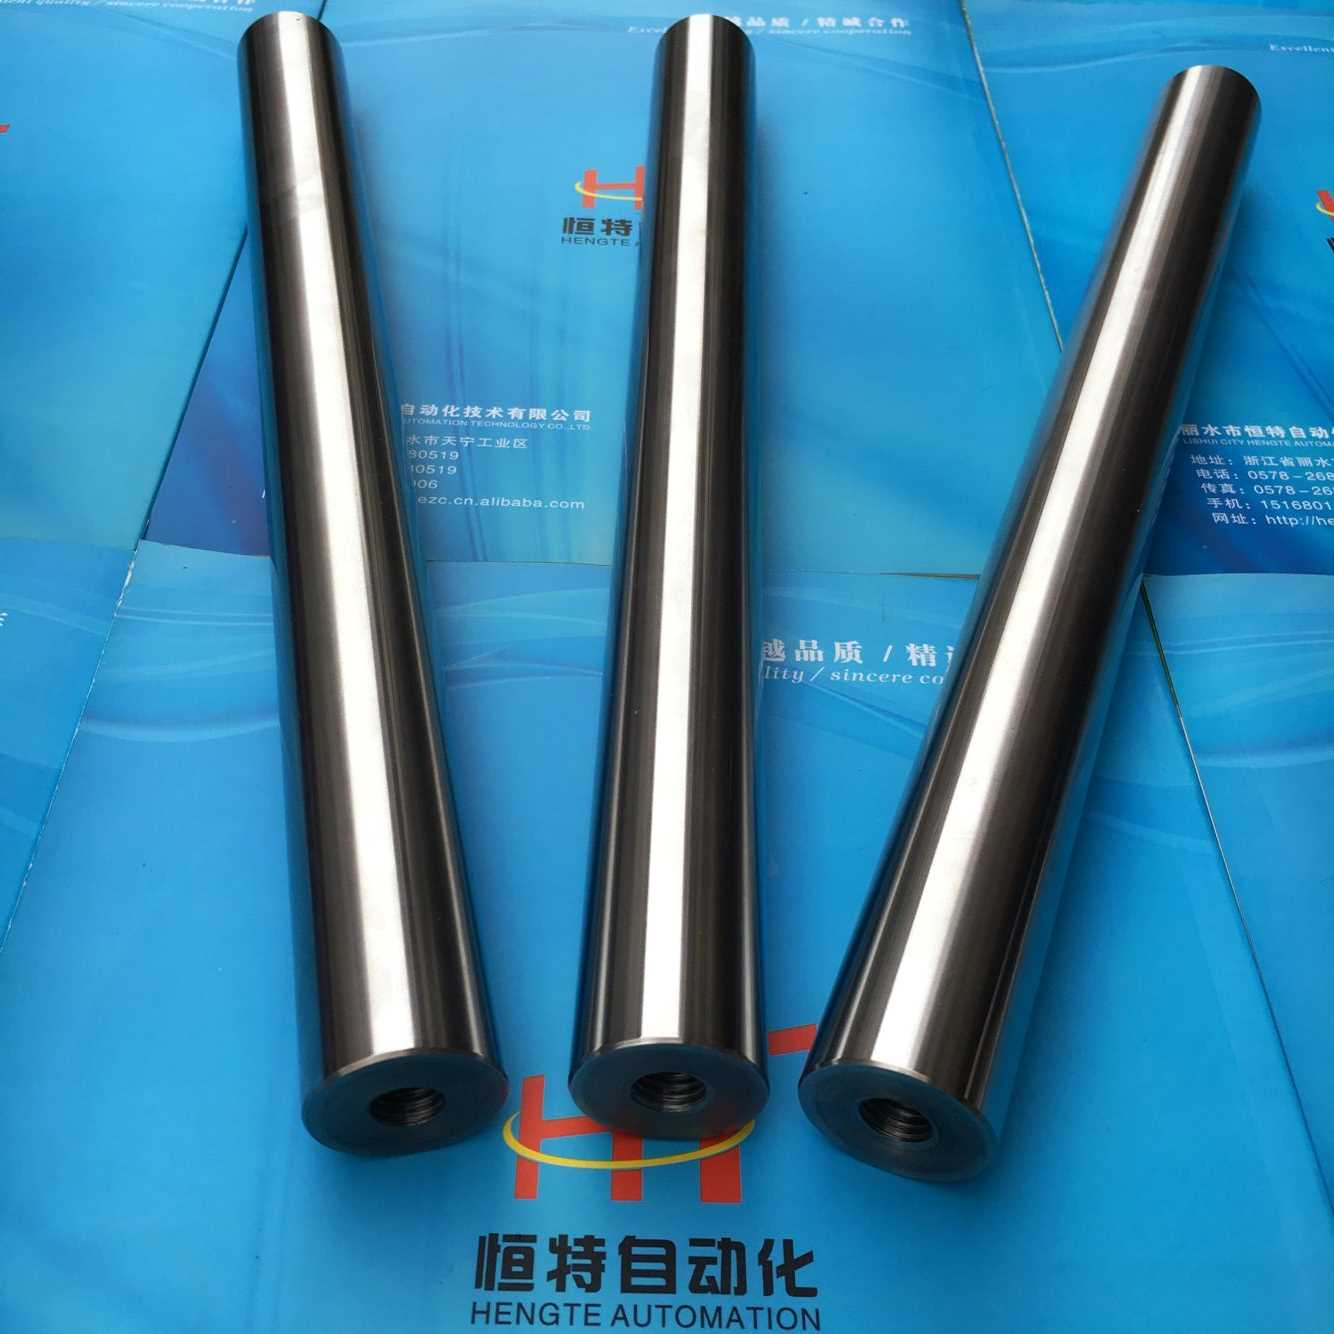 Precision chromium plating hard axis diameter 10/12/16/20/25/30/35/40/50/60 of bearing steel